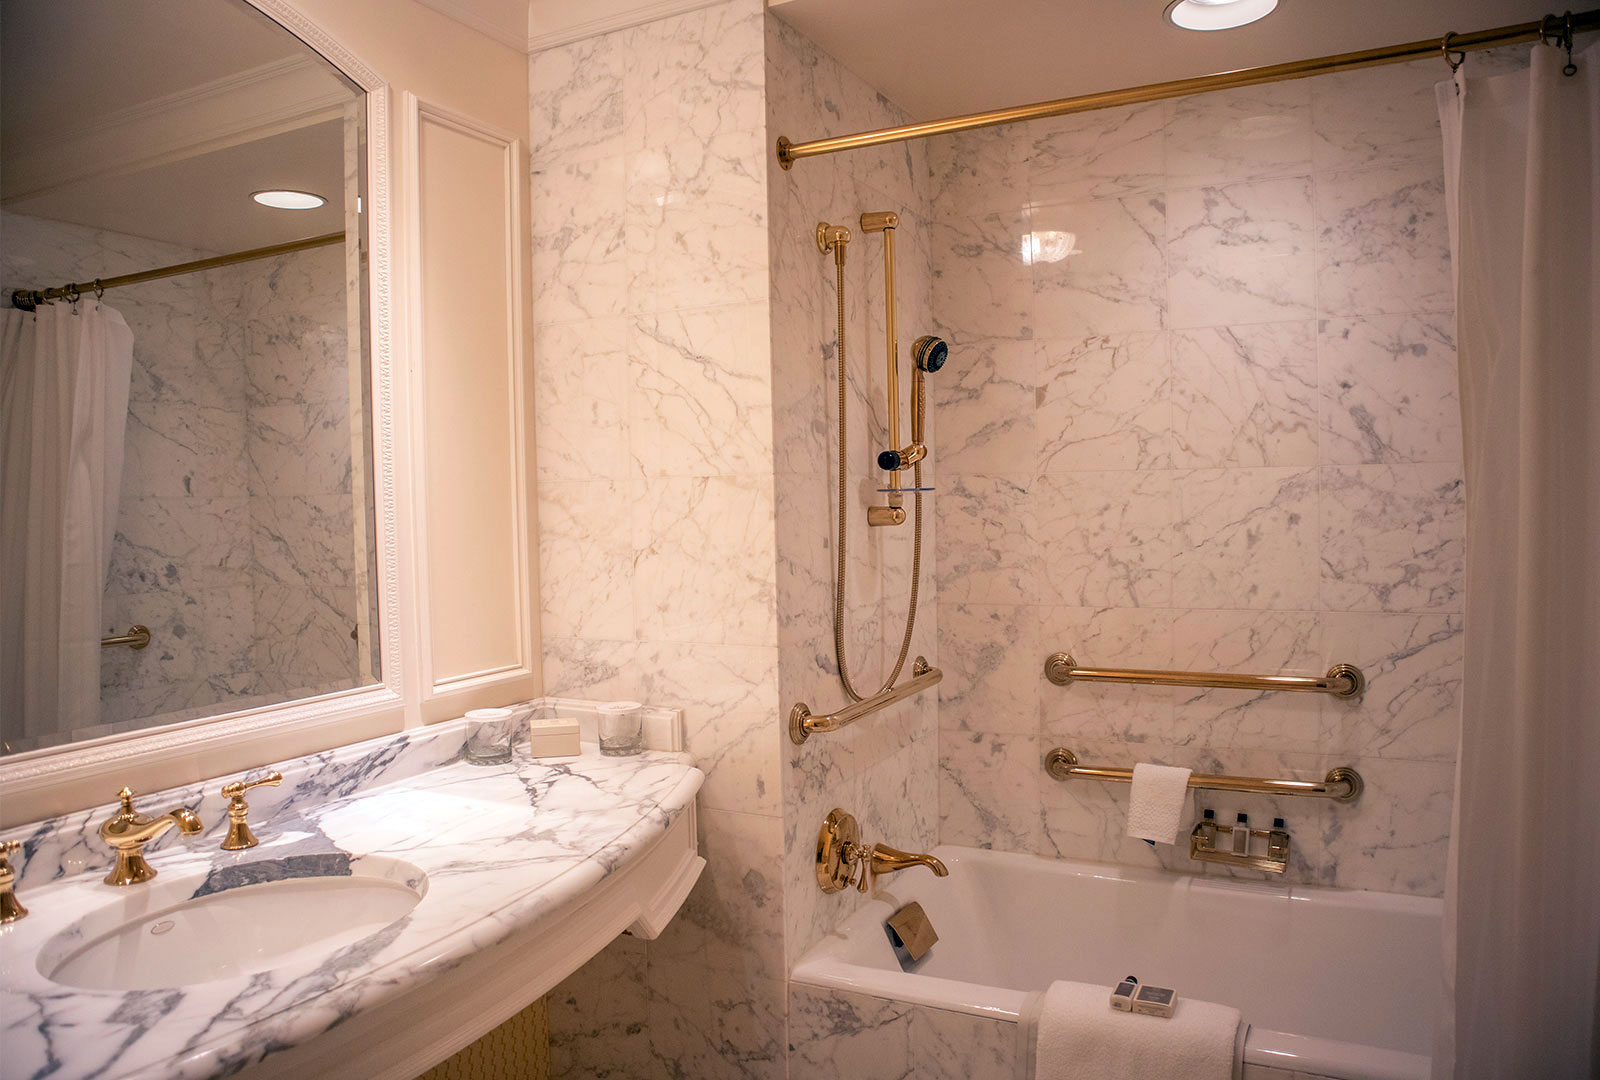 Guest Bathroom with Marble Sink and Bathtub with ADA Rails